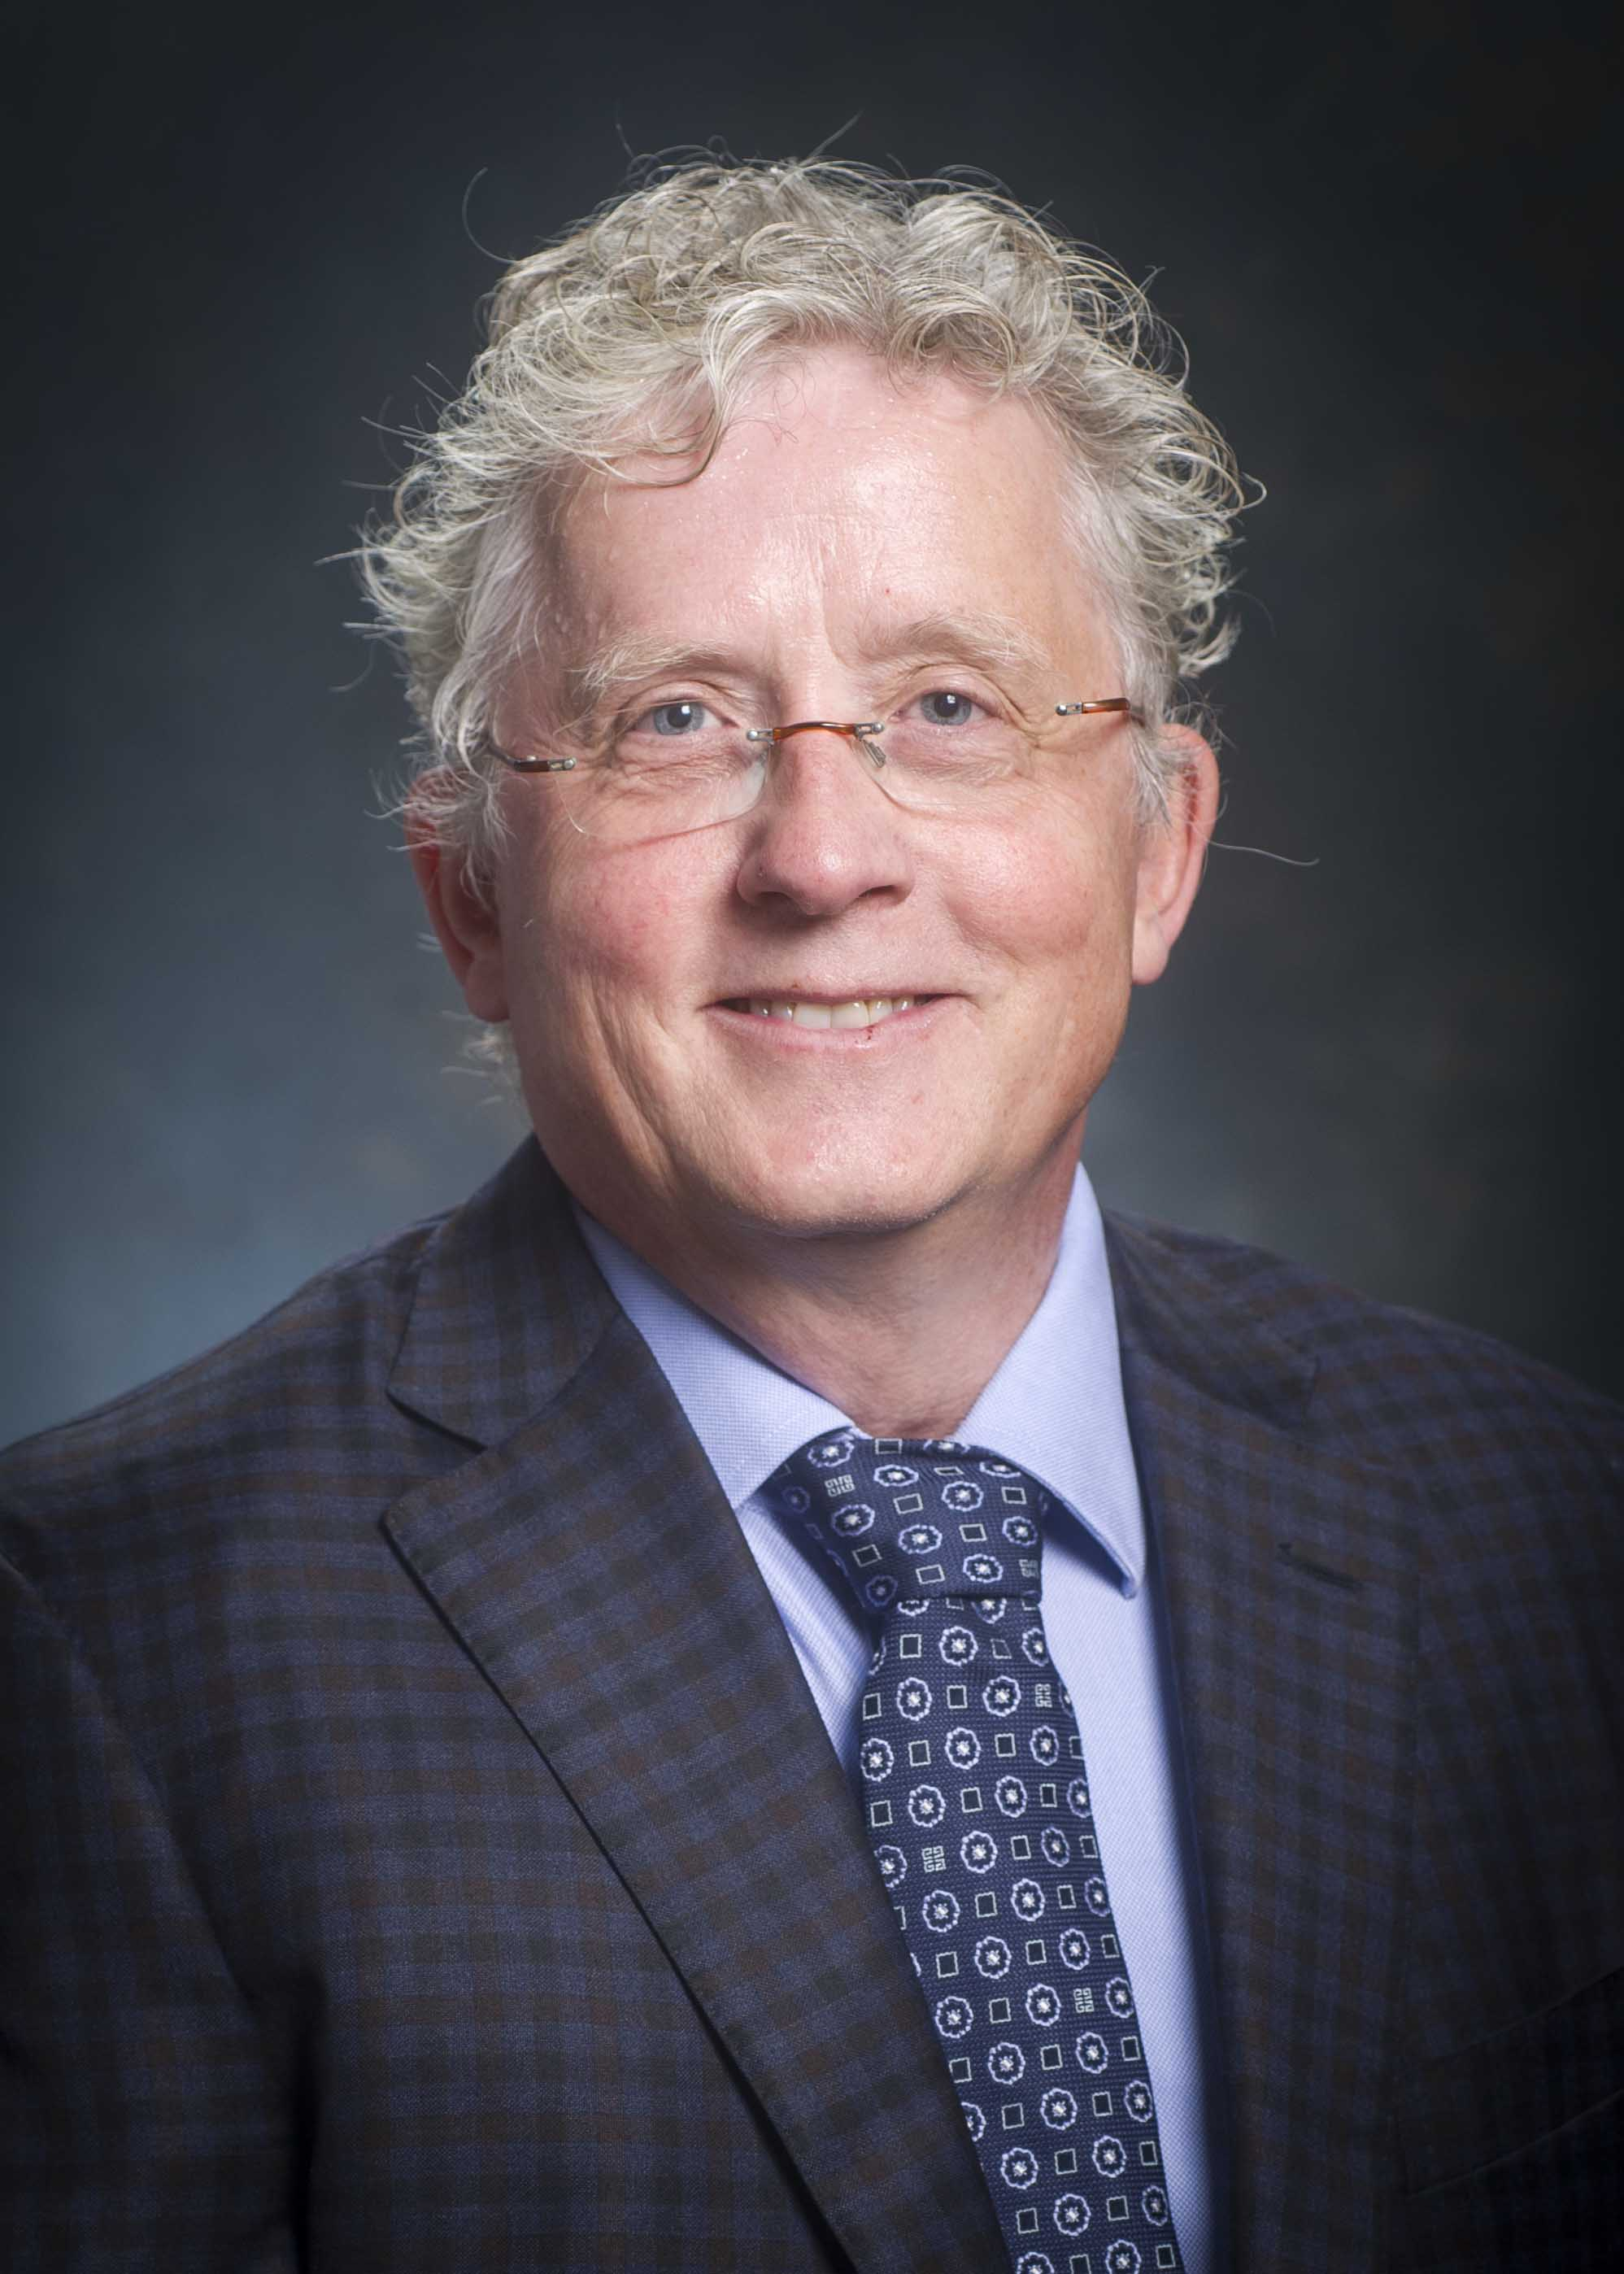 Head shot of Dr. John Chatham, PhD (Professor/Director, Molecular and Cellular Pathology), 2018.